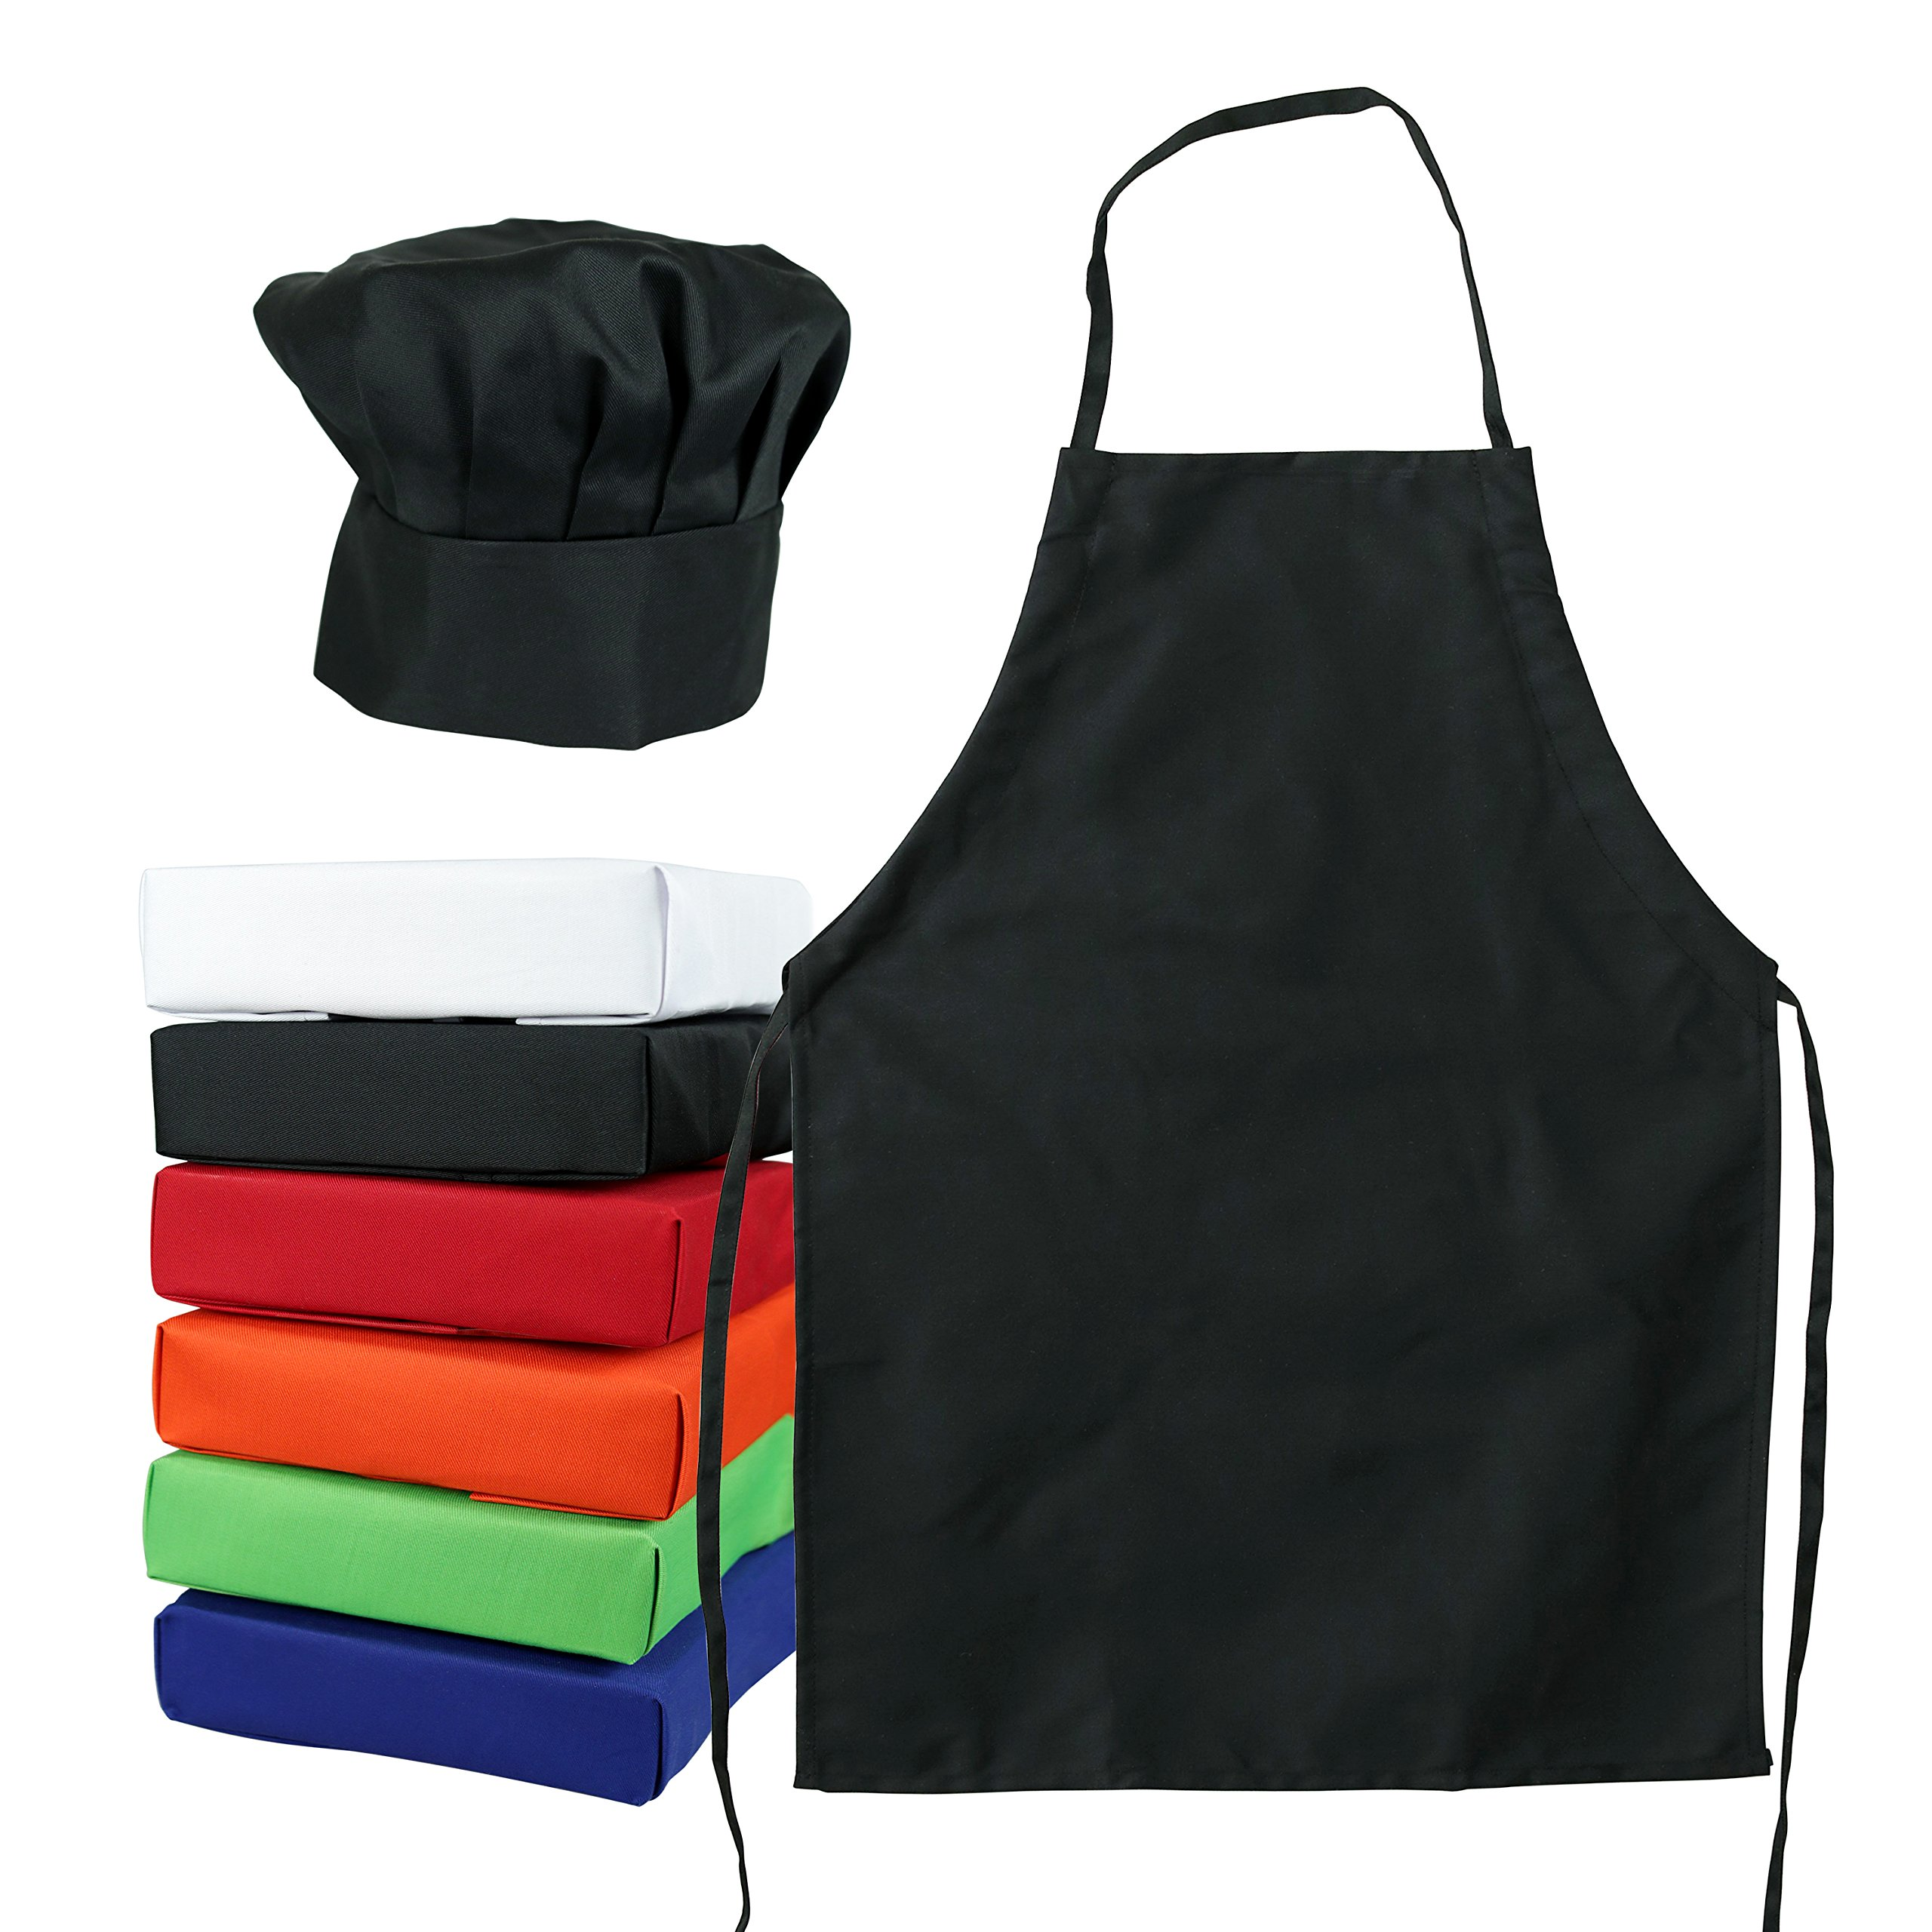 Tessa's Kitchen Kids -Child's Chef Hat Apron Set, Kids Size, Children's Kitchen Cooking and Baking Wear Kit for those Chefs in Training, Size (S 2-5 Year, Black) by Odelia (Image #1)